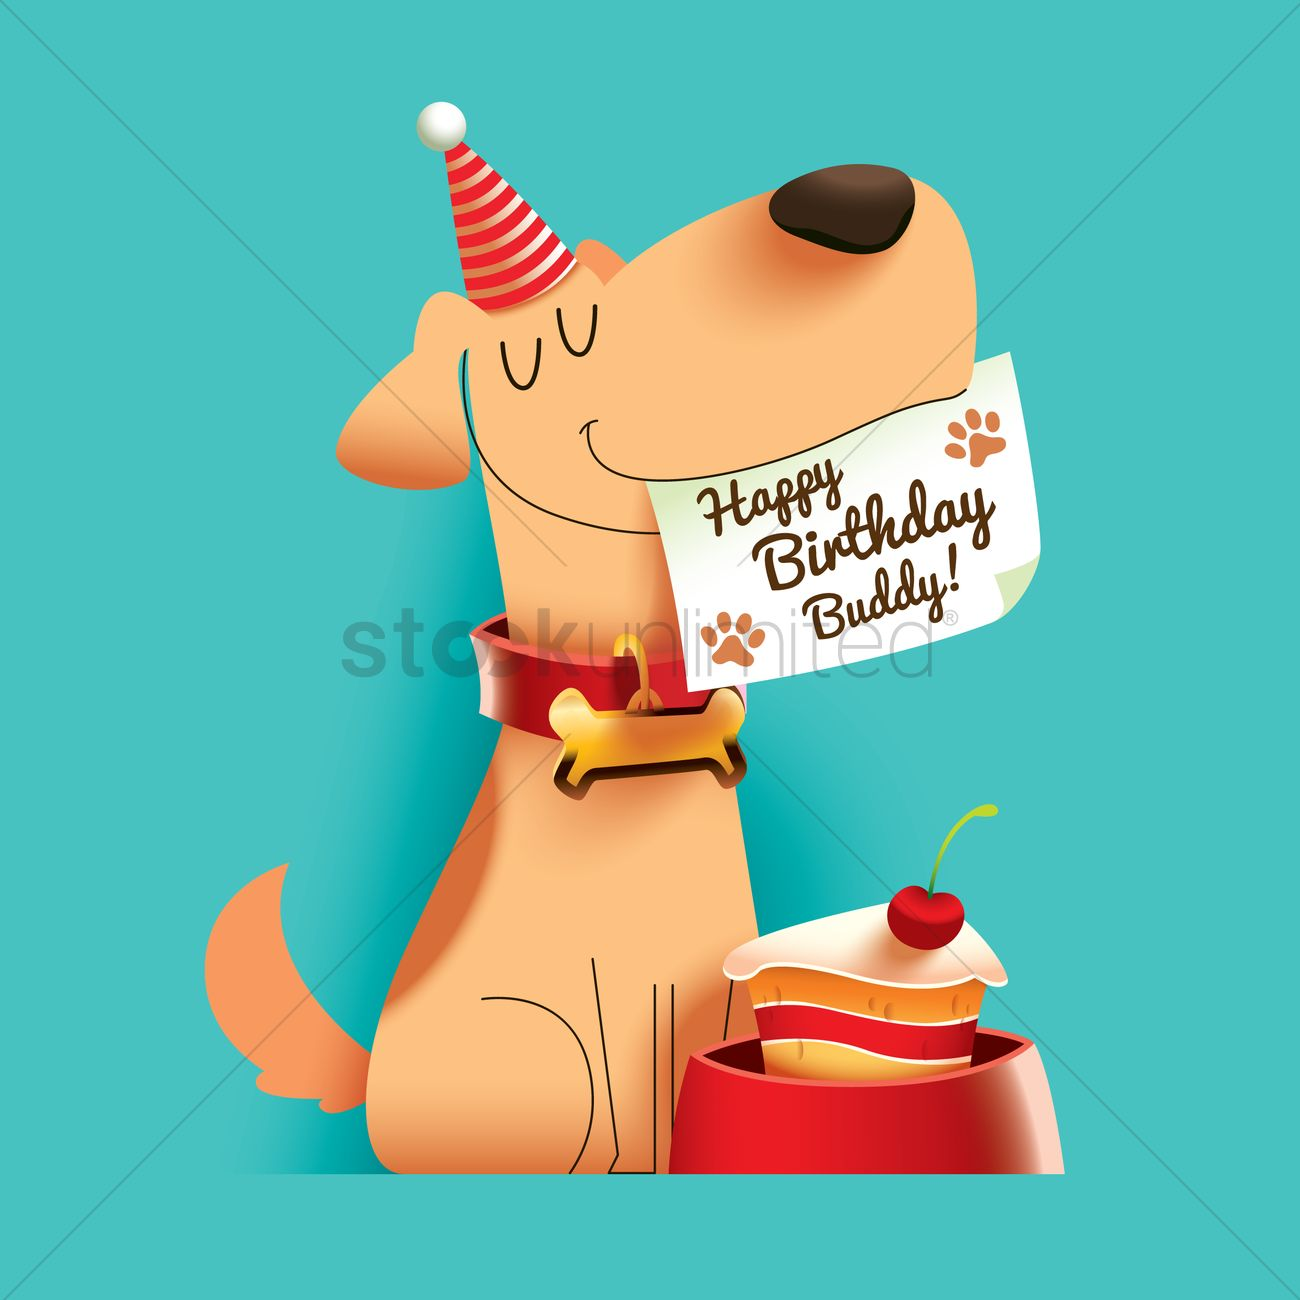 dog with happy birthday buddy note vector image 1797678 african american clip art women african american clip art church